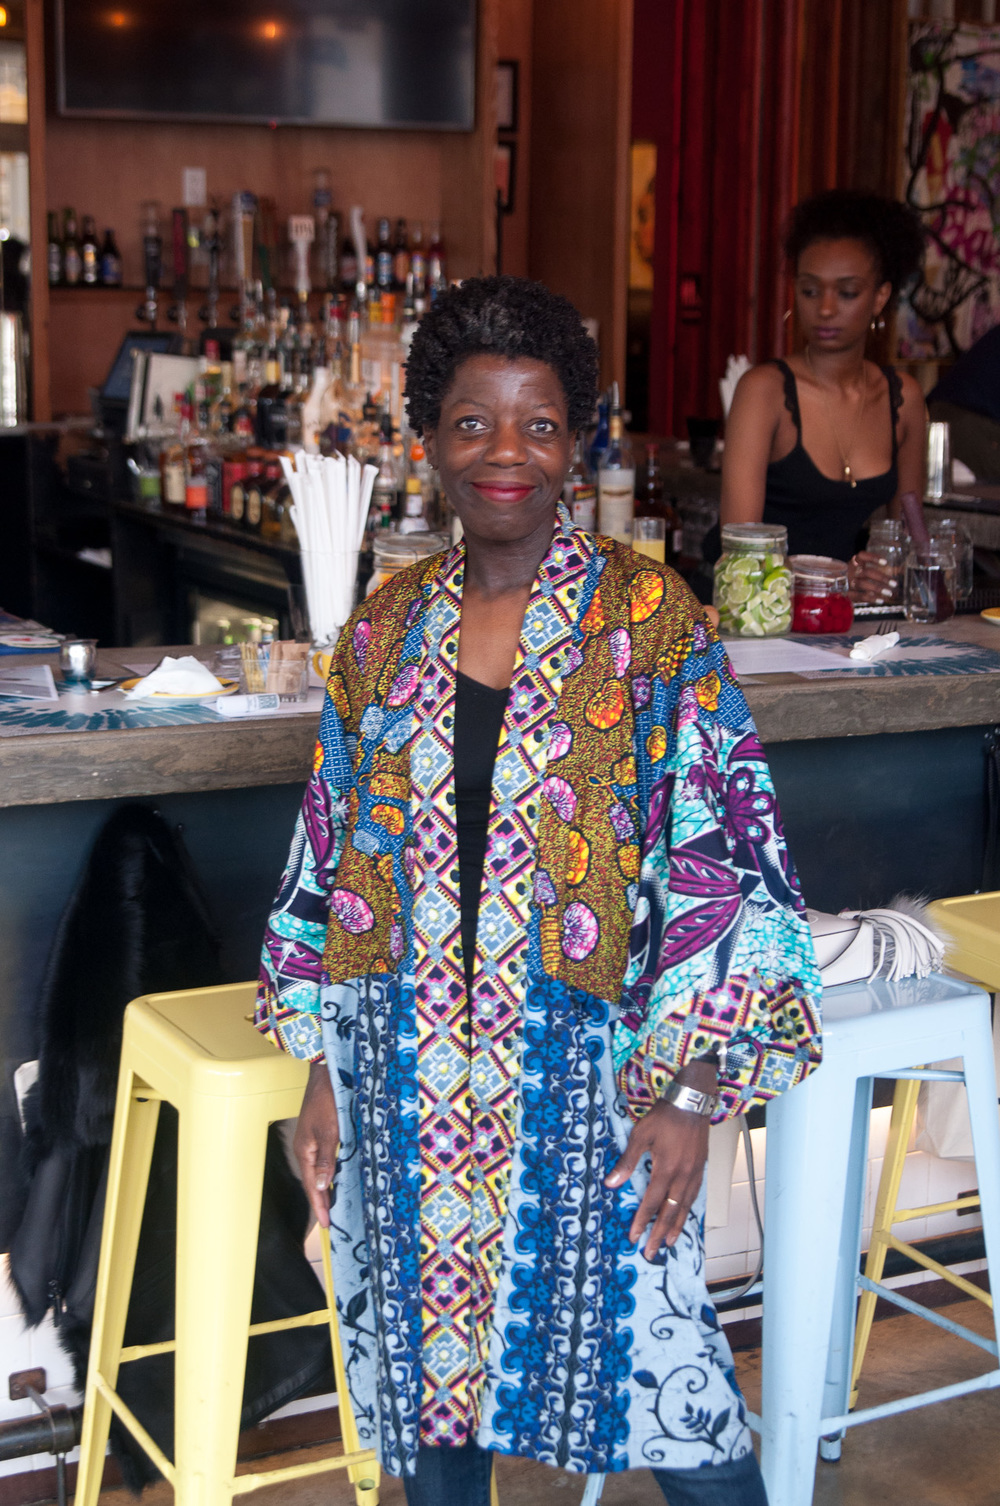 The amazing Thelma Golden, Director and Chief Curator of The Studio Museum in Harlem.